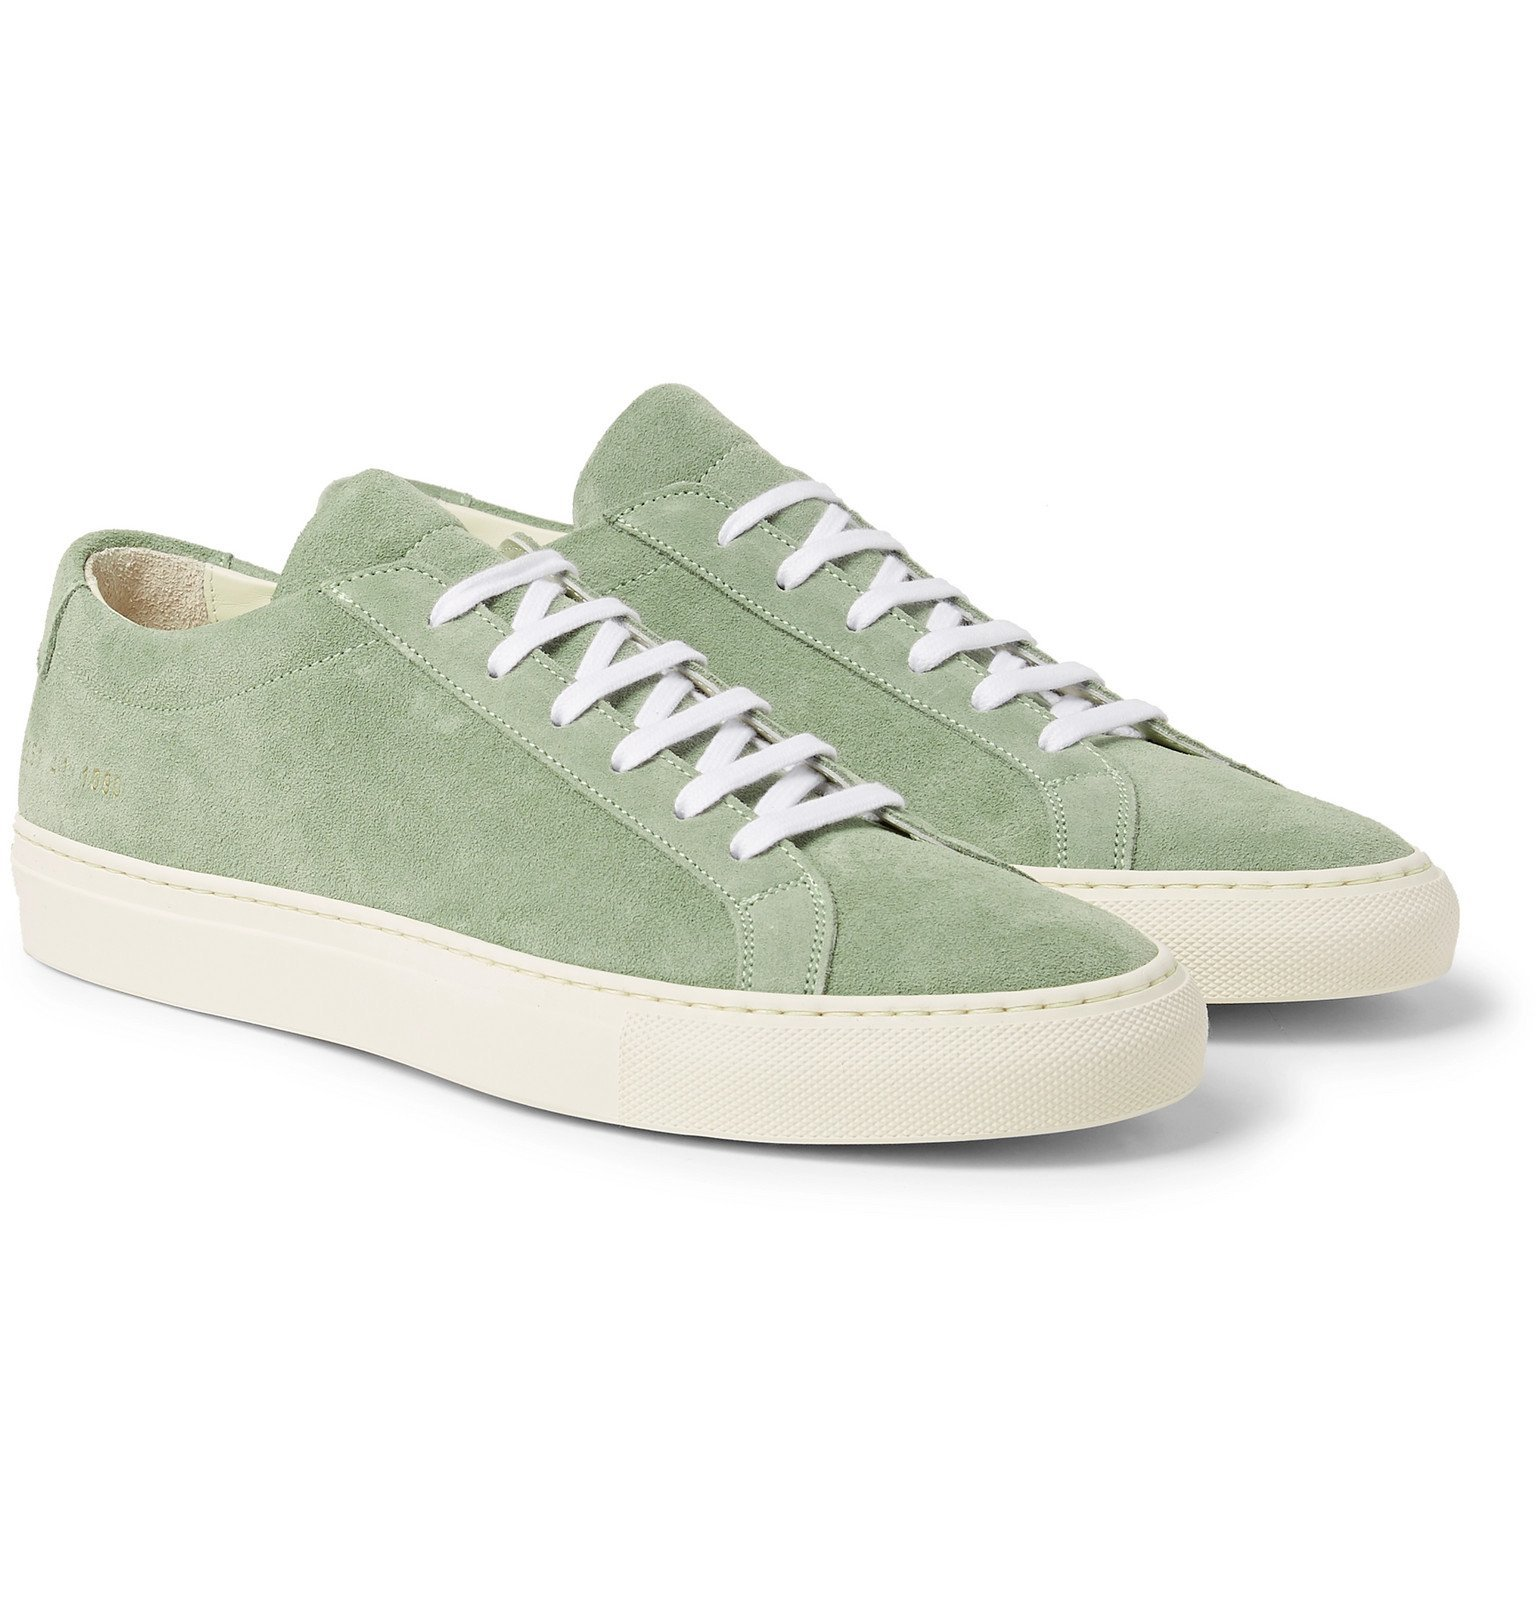 Common Projects - Original Achilles Suede Sneakers - Green